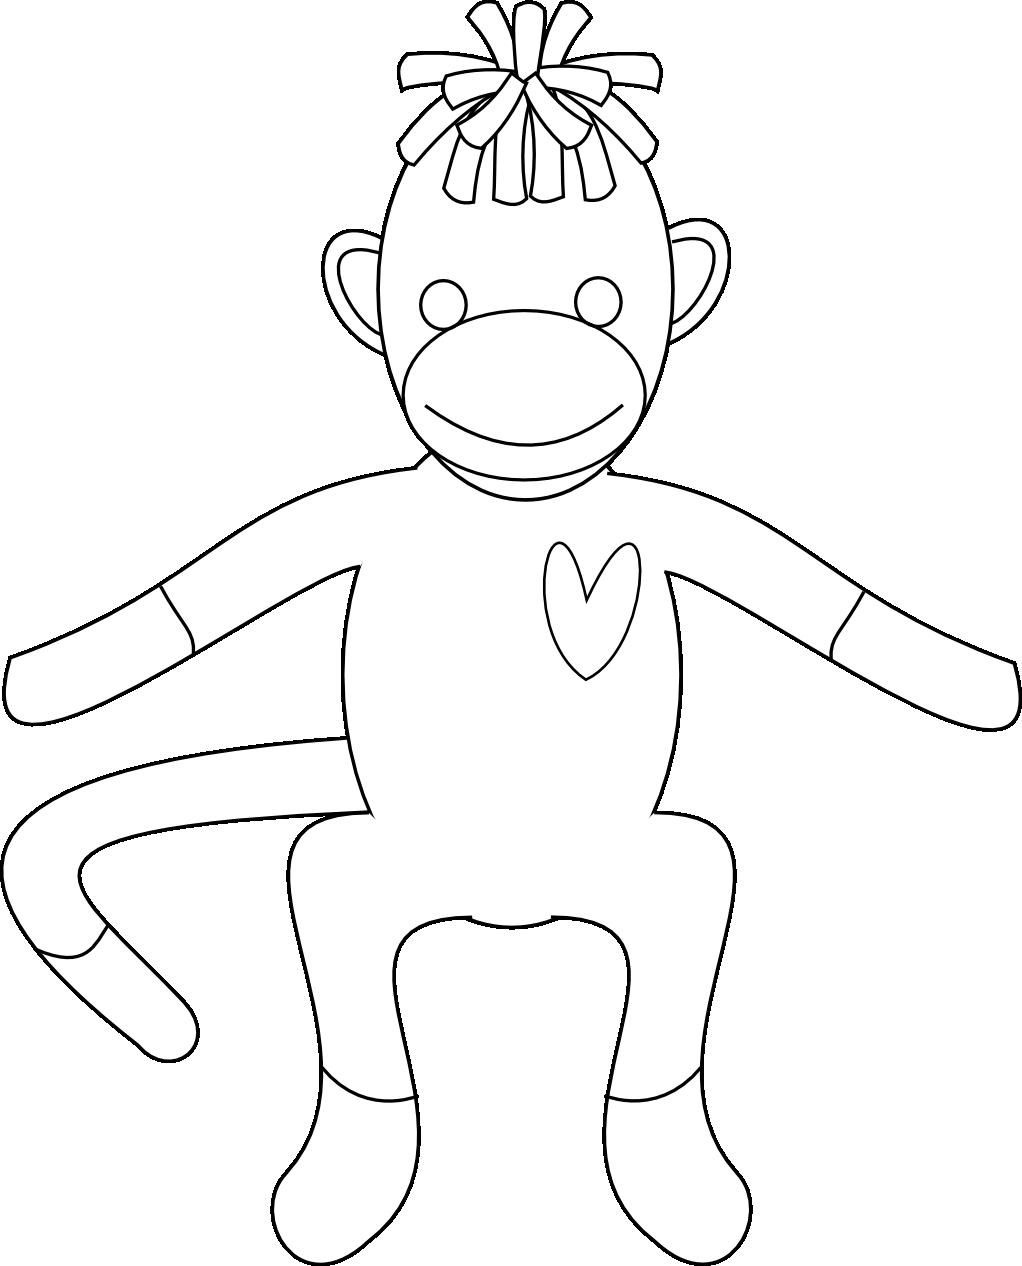 Pinjackie Schreiner On Fall School | Monkey Coloring Pages, Sock - Free Printable Sock Monkey Pictures